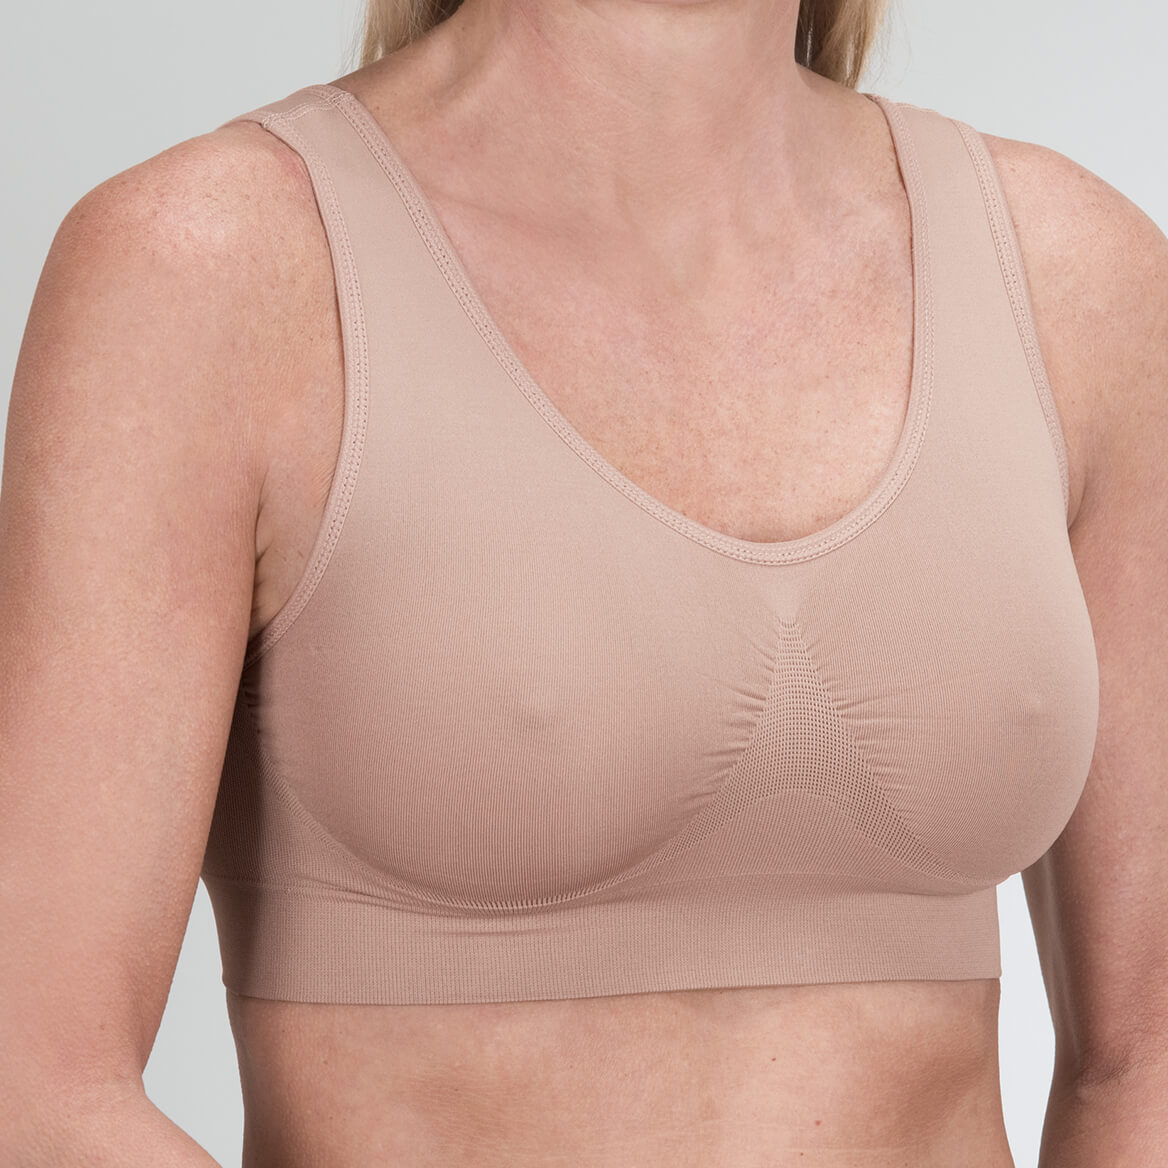 Easy Comforts Style™ Everyday Seamless Bra, 3 Pack-354024